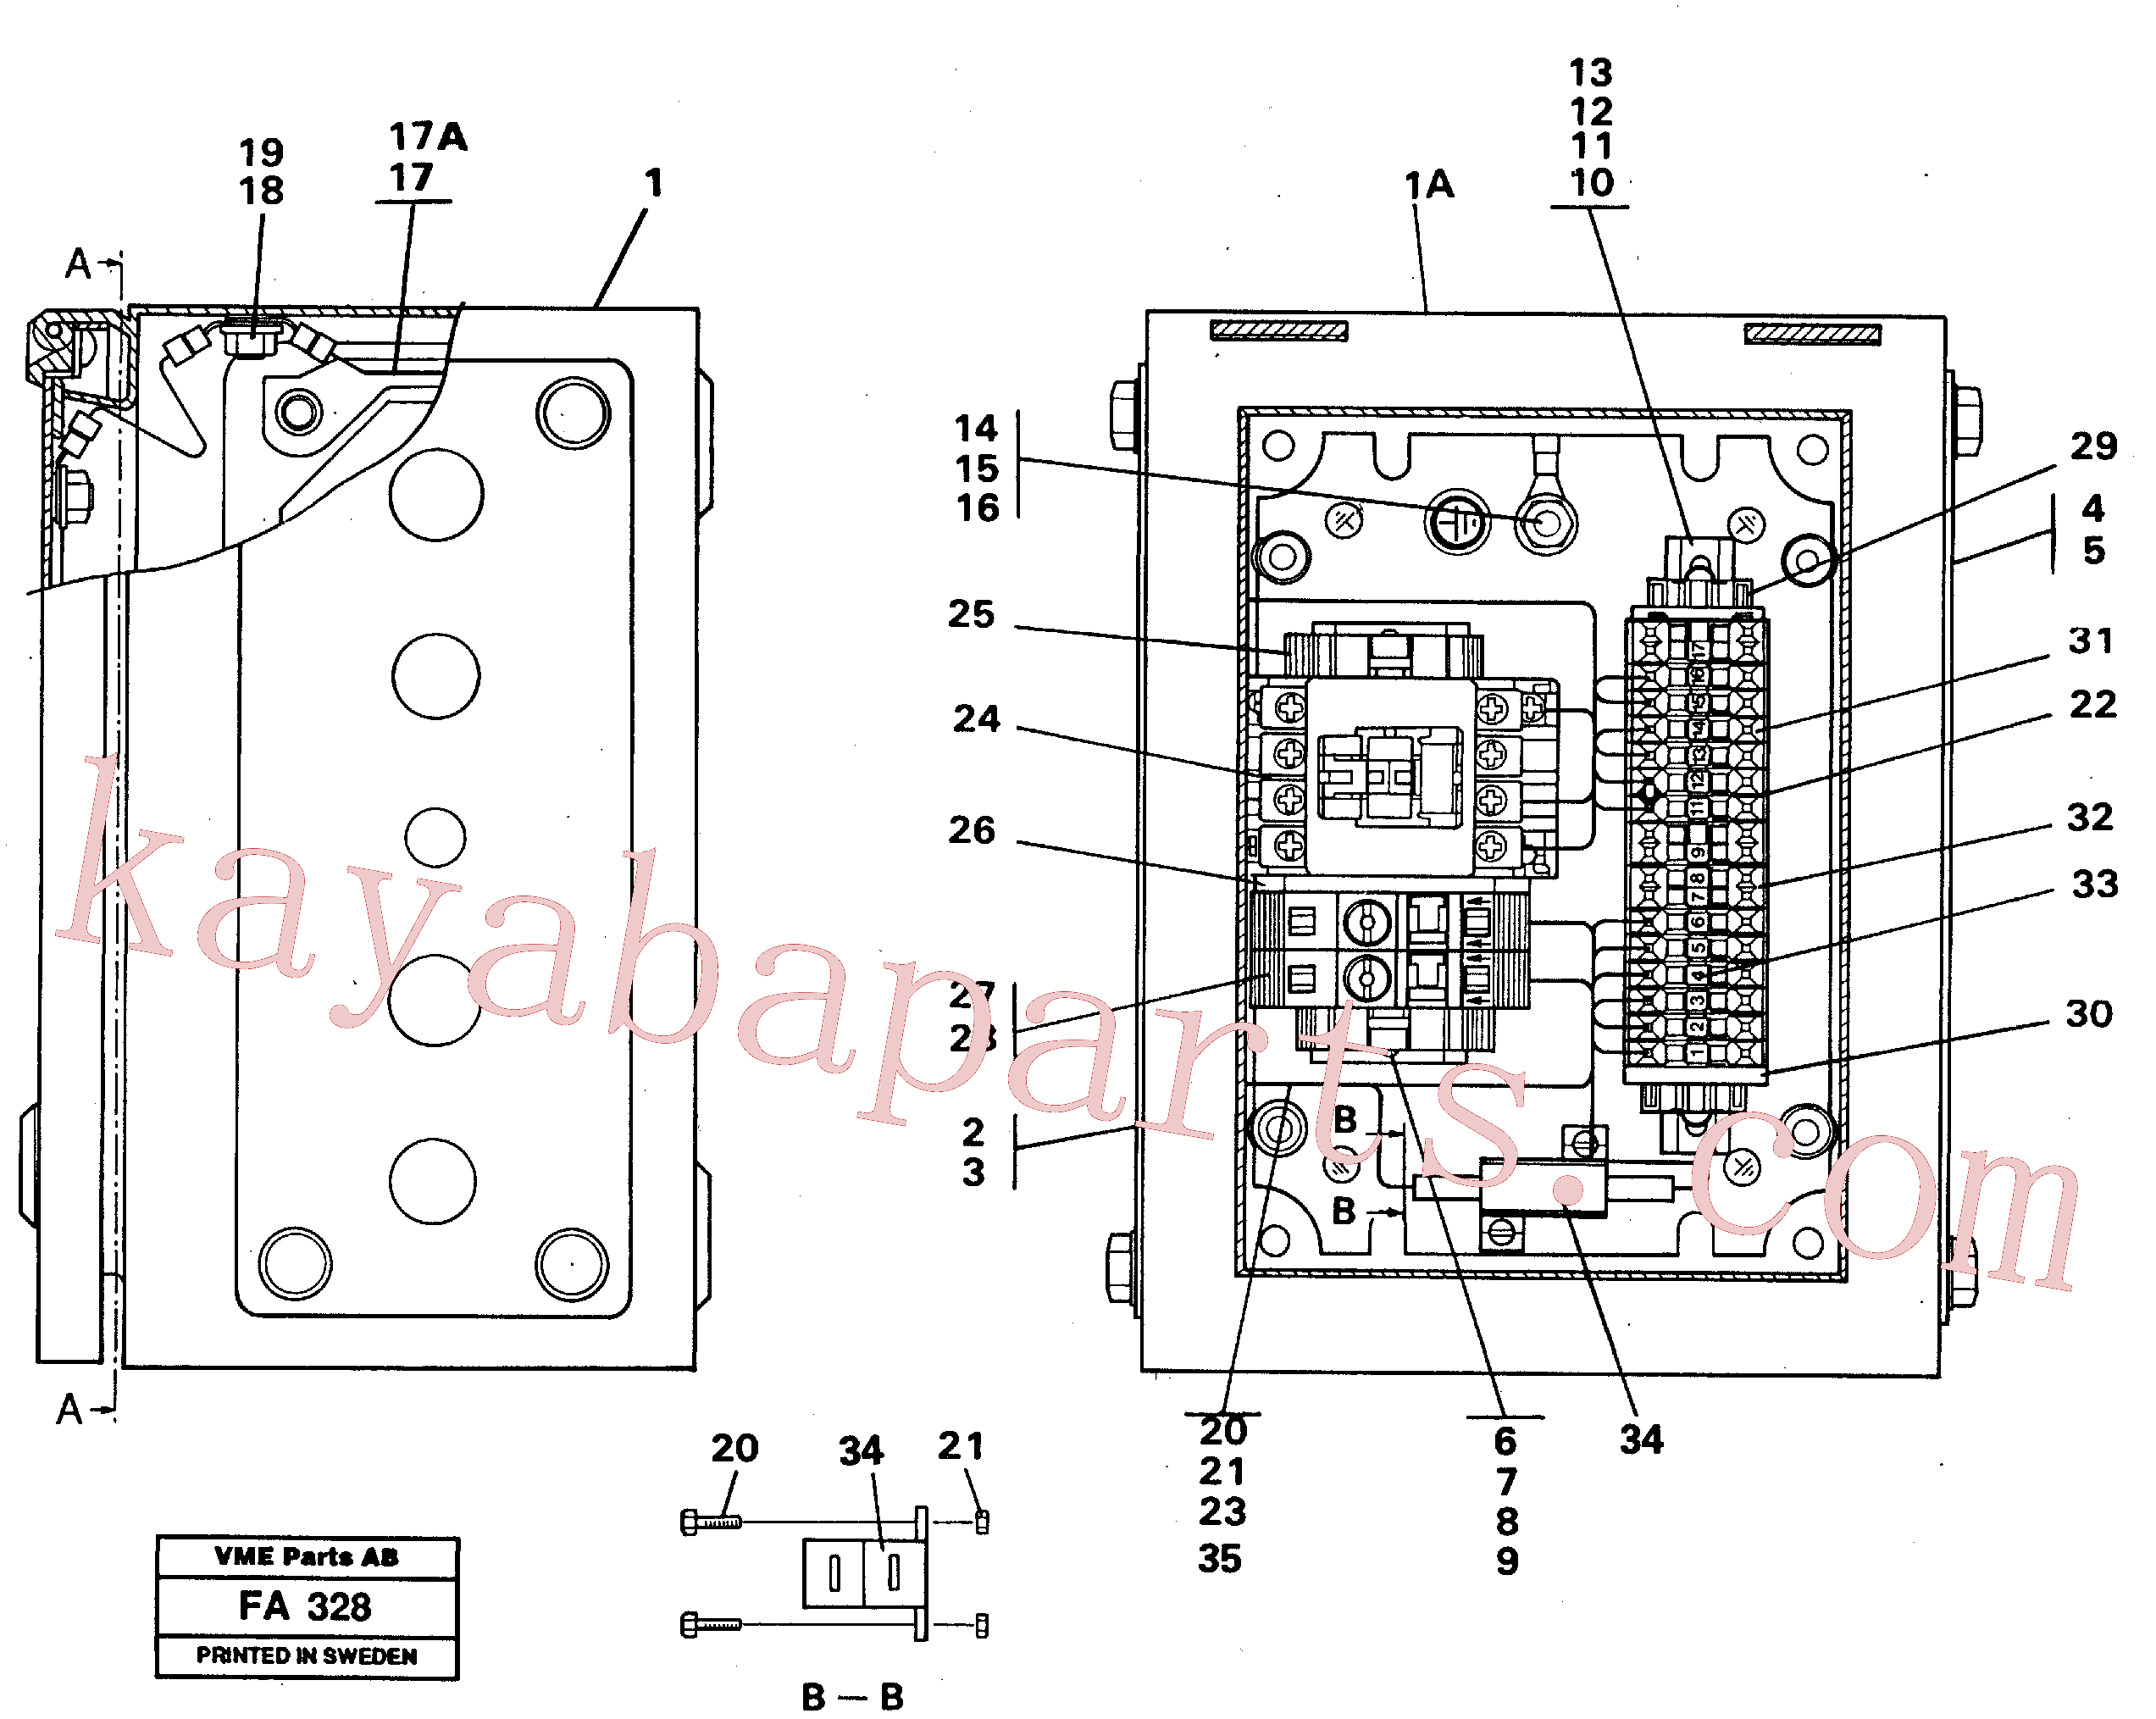 VOE14213801 for Volvo Magnet equipment Ohio, Electrical distribution unit(FA328 assembly)